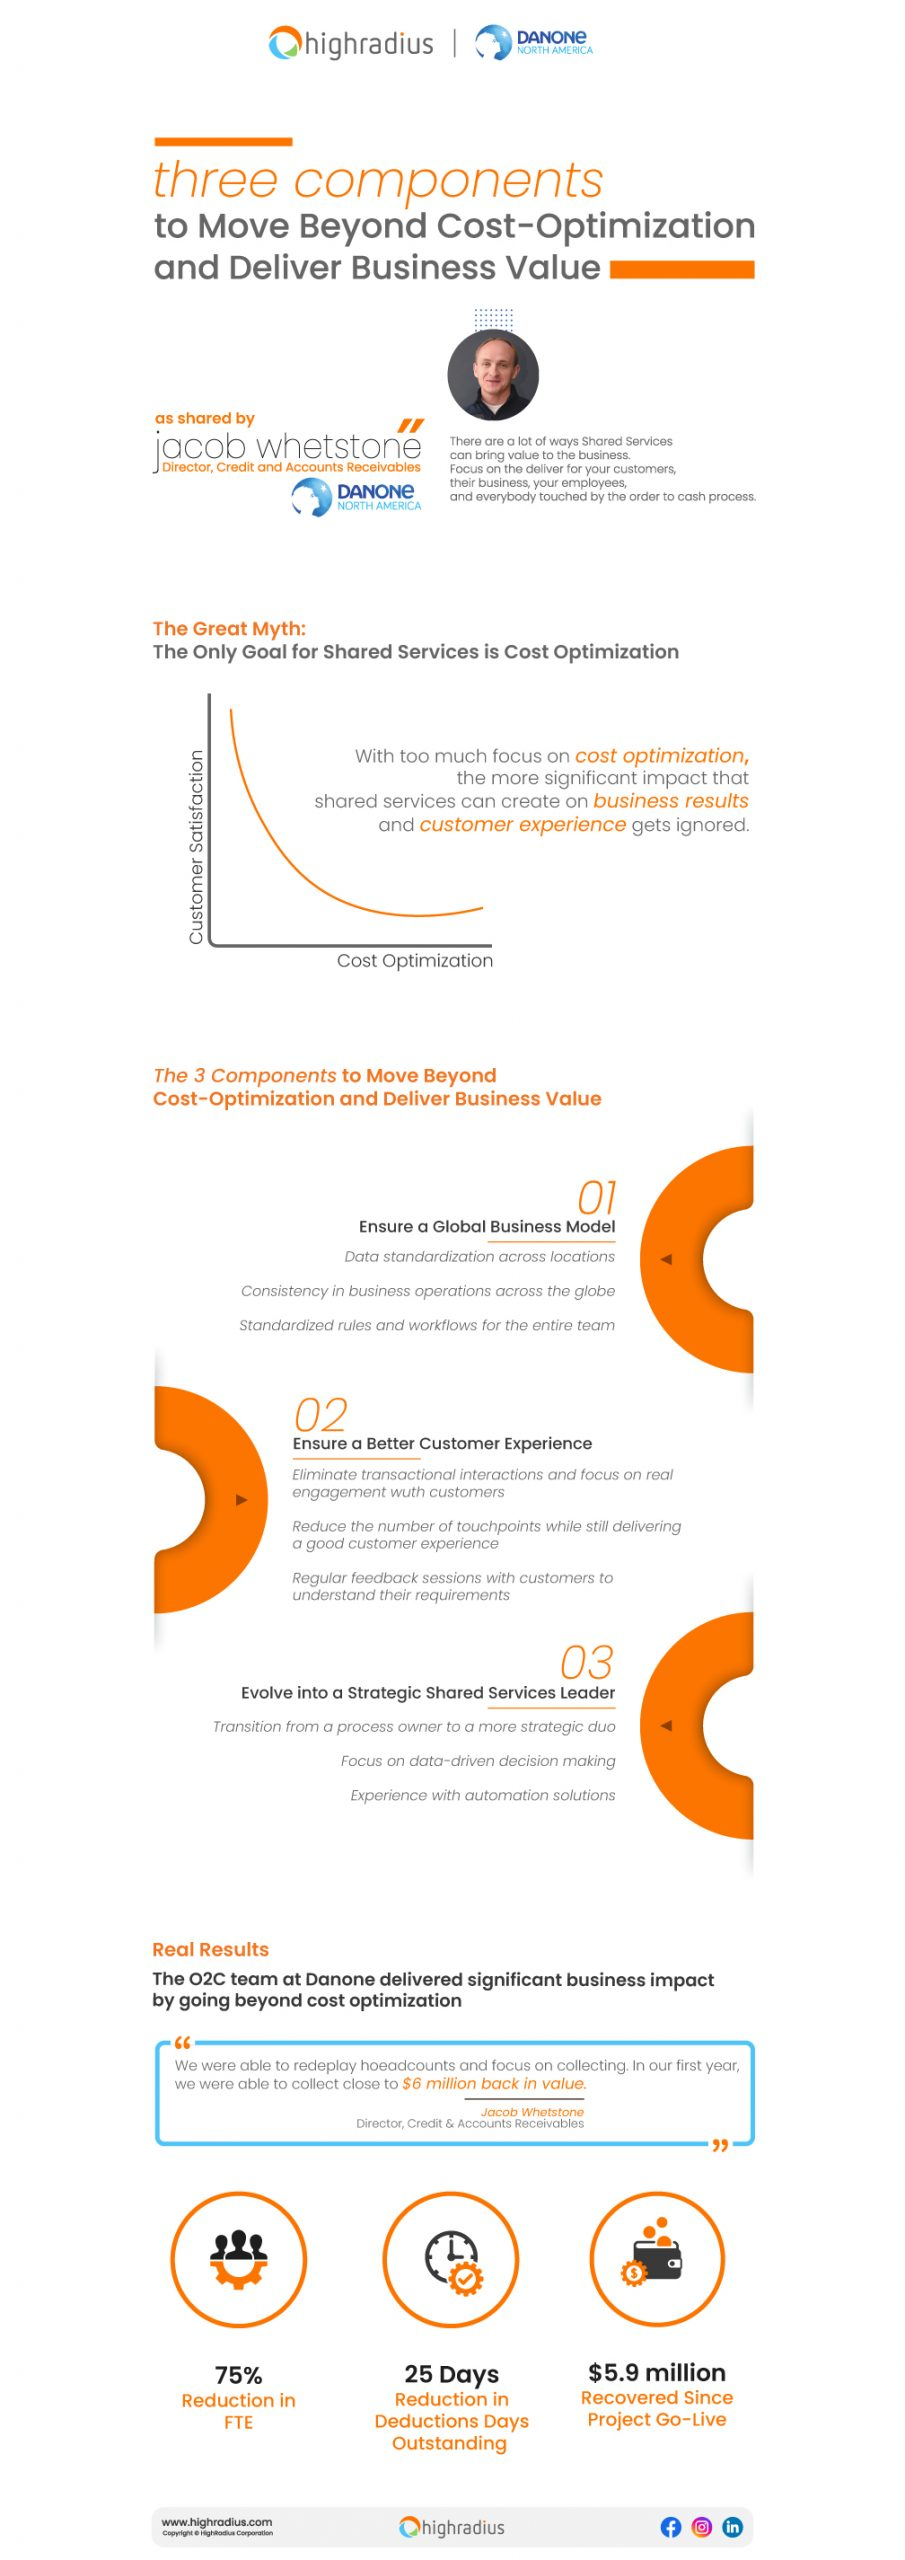 3 Components to Move Beyond Cost-Optimization and Deliver Business Value